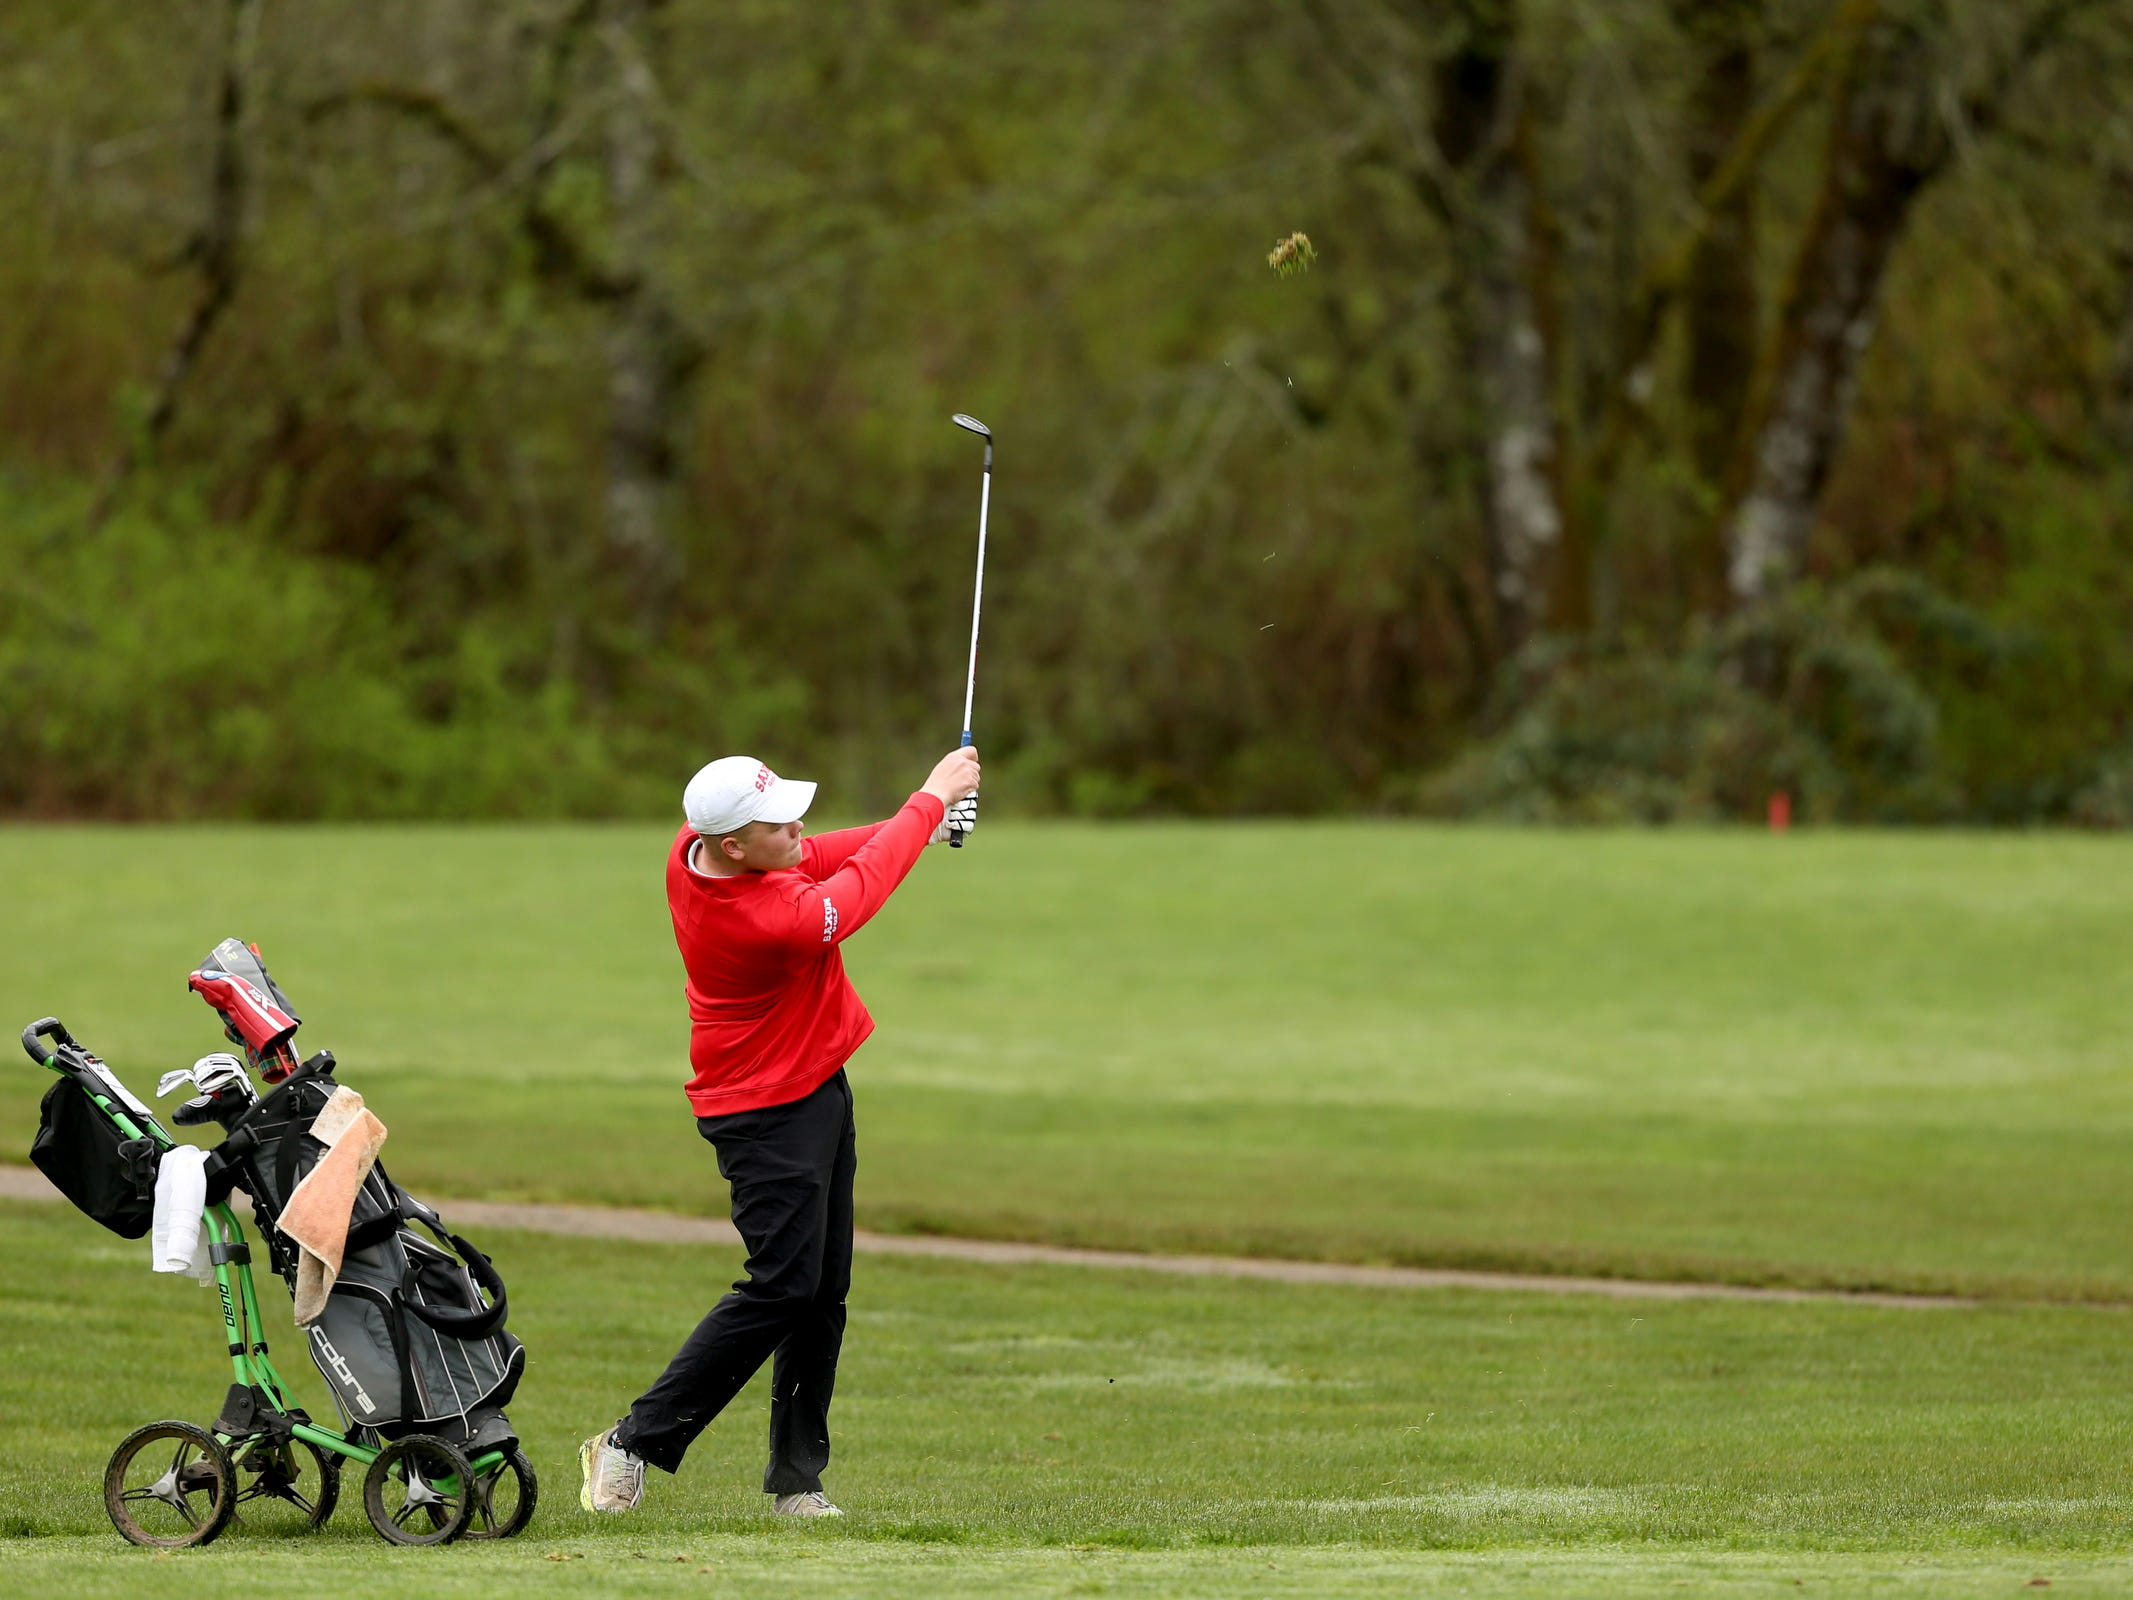 South Salem's Lucas Paul competes during a Mountain Valley Conference league high school golf match at Creekside Golf Club in Salem on April 15, 2019.